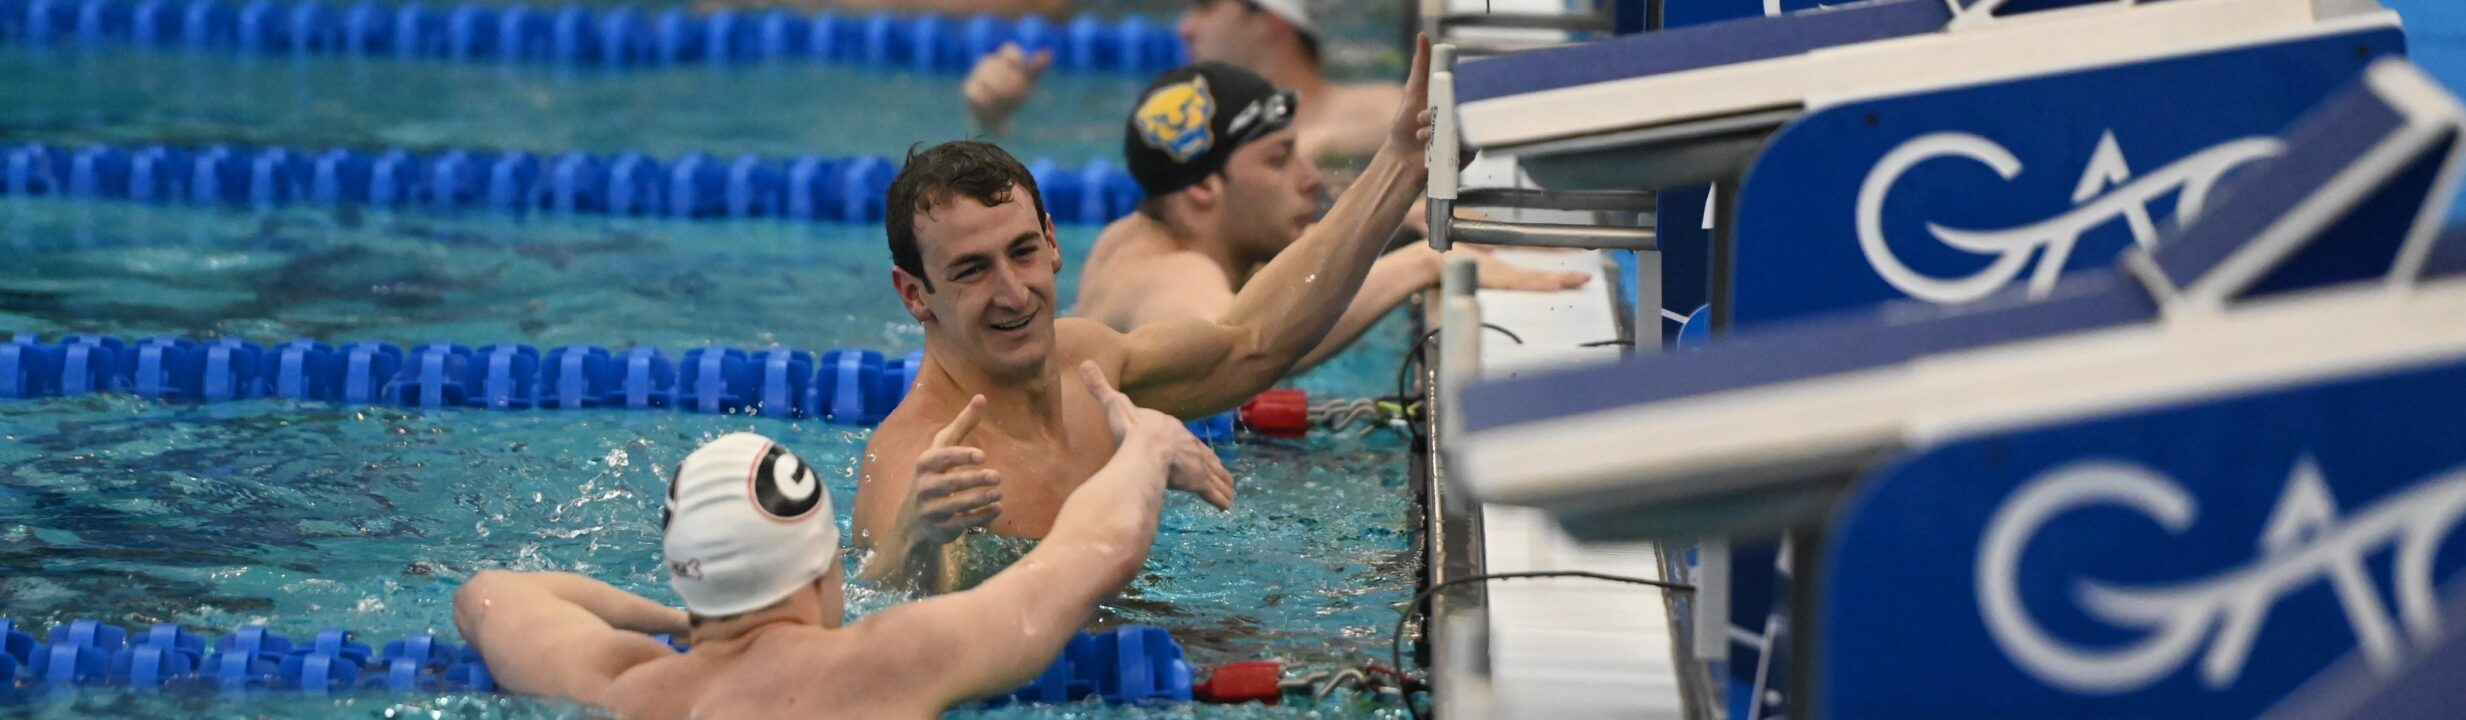 2021 SwimSwam Men's NCAA Championships Pick 'Em Contest – Day 1 Results